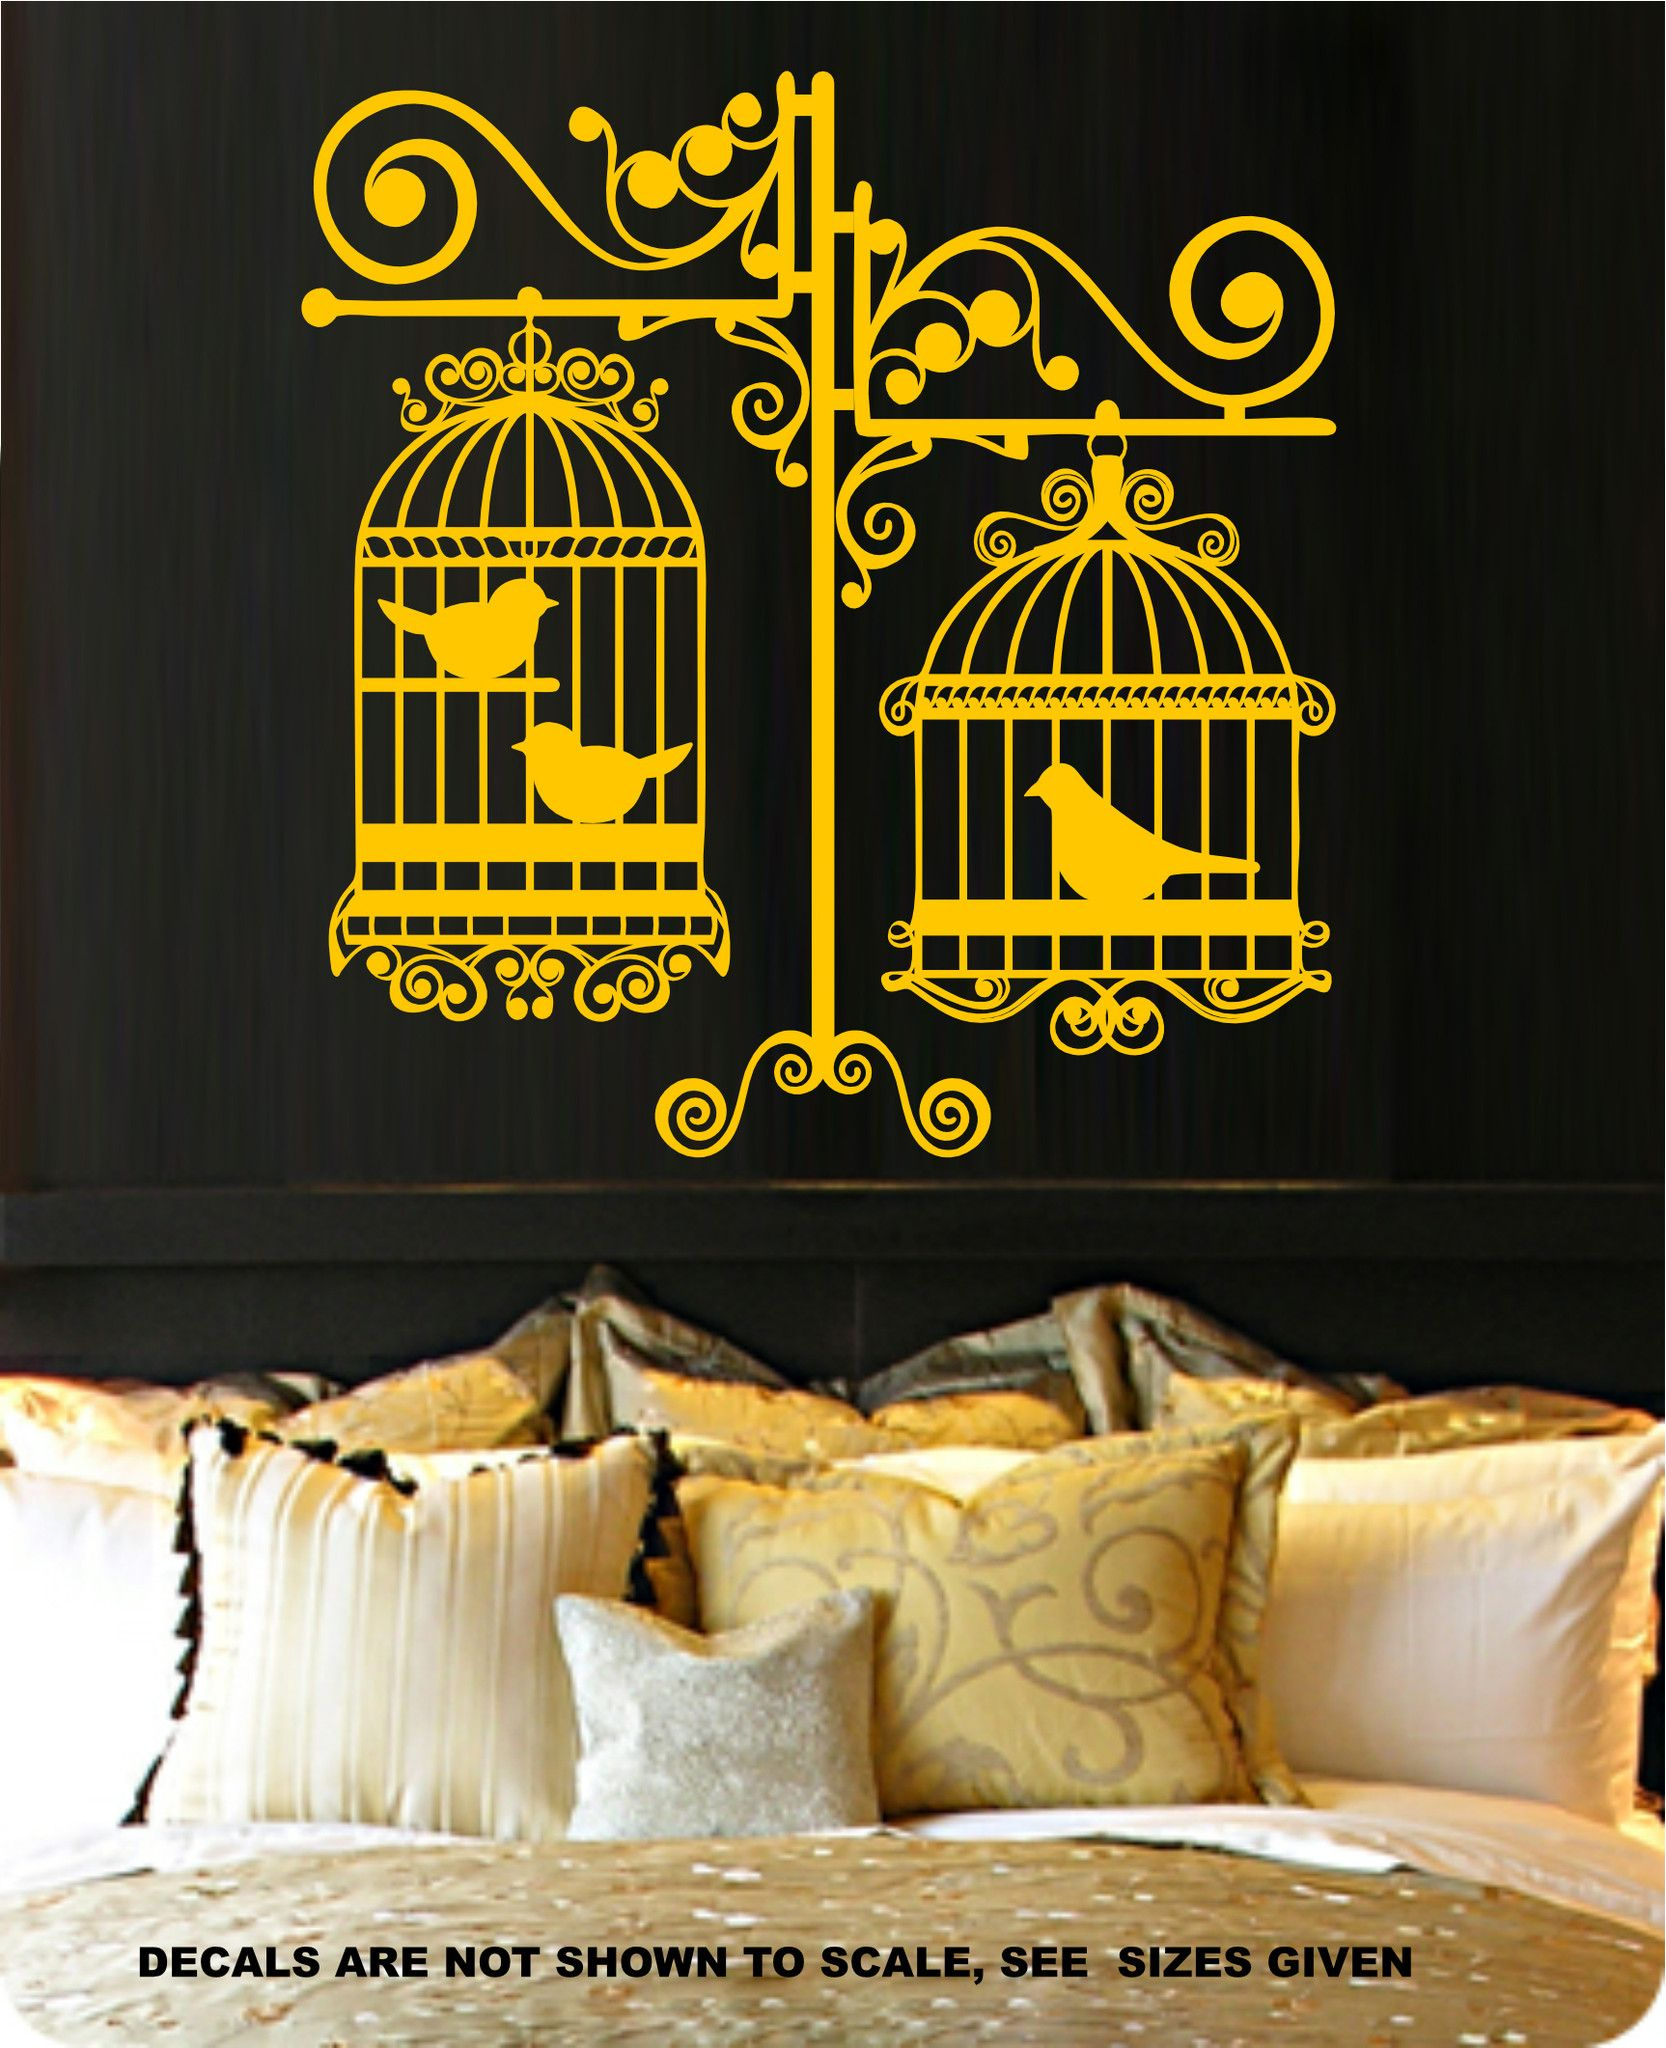 BIRD CAGES SILHOUETTE BEDROOM TYPE 5 WALL ART STICKER MEDIUM VINYL ...